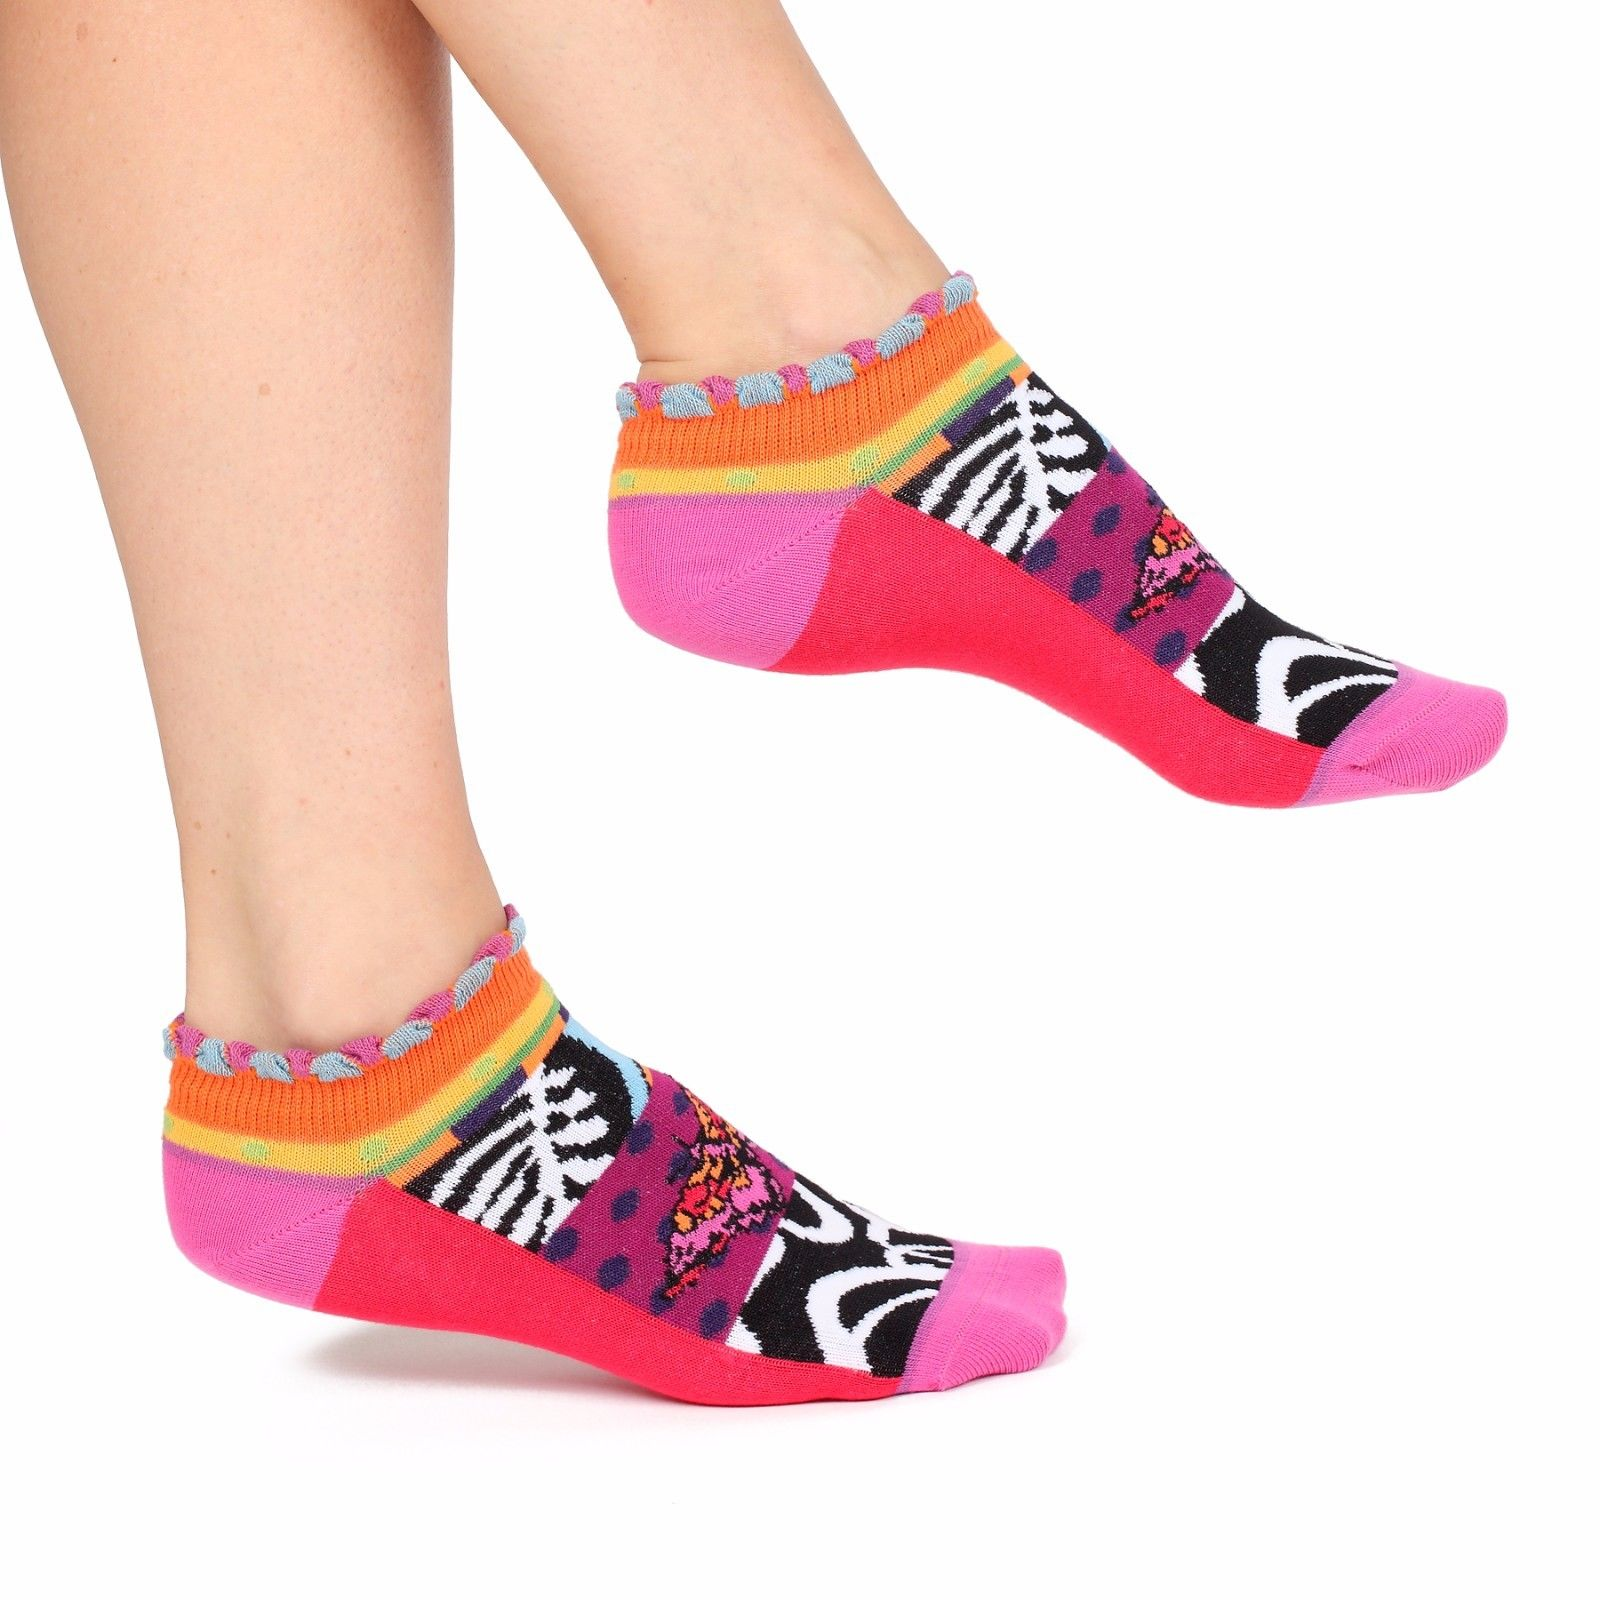 dub drino france women s short anklet ped socks fun colorful funky